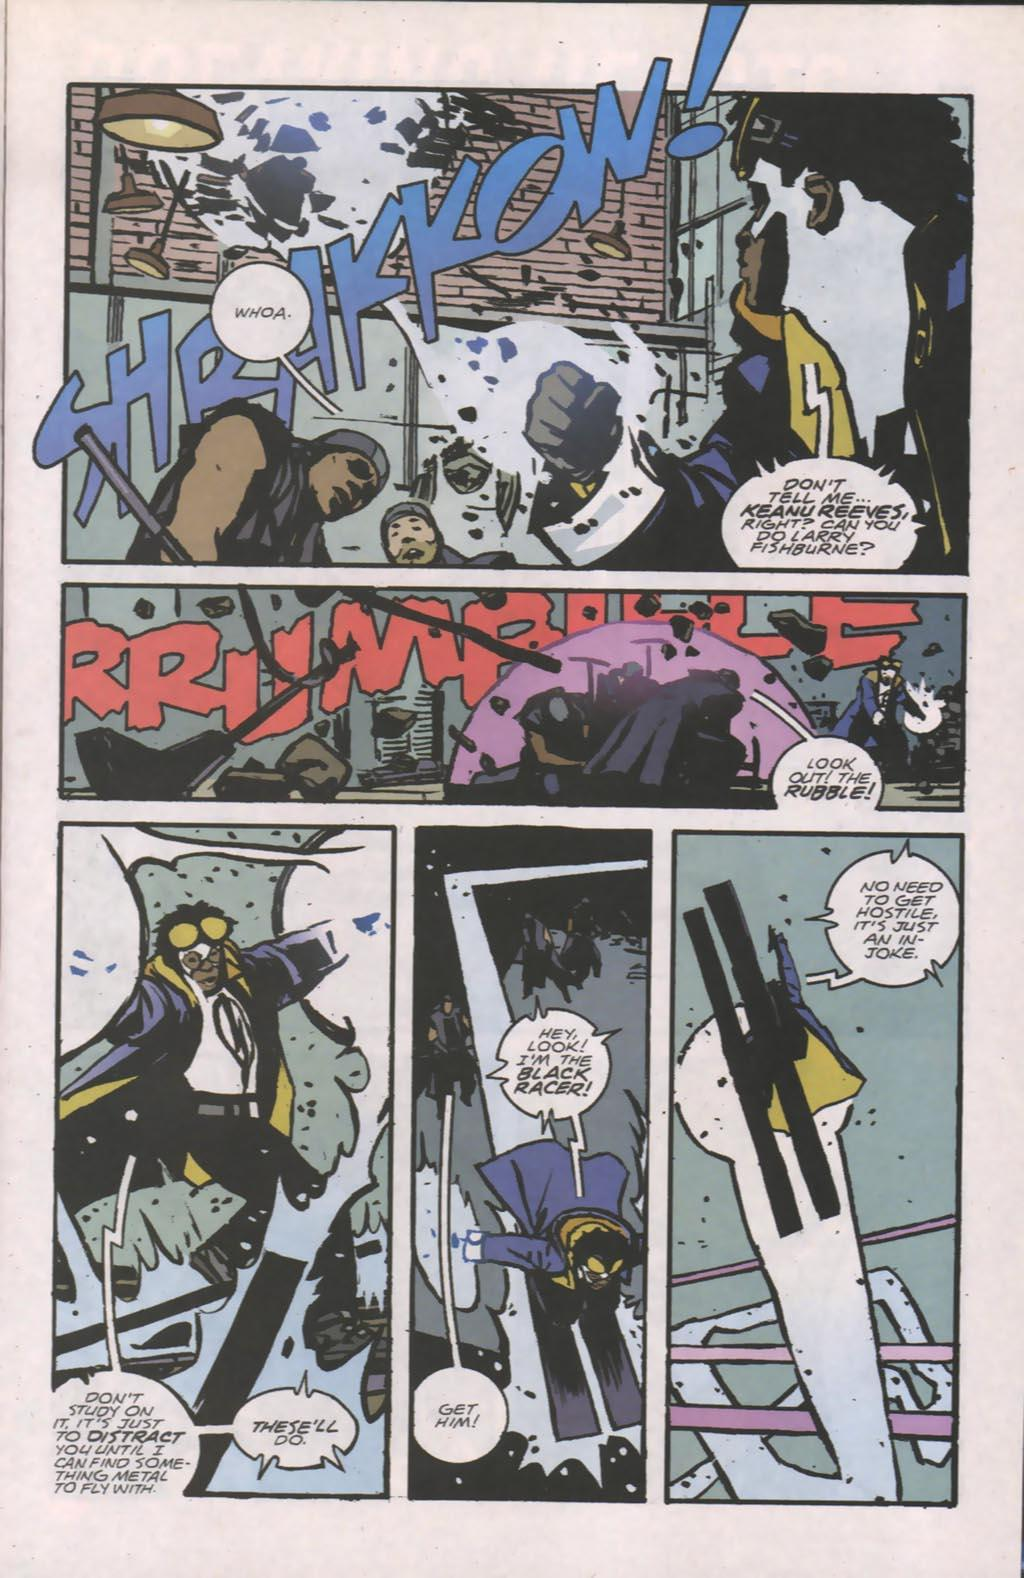 Static Shock Rebirth of the Cool review